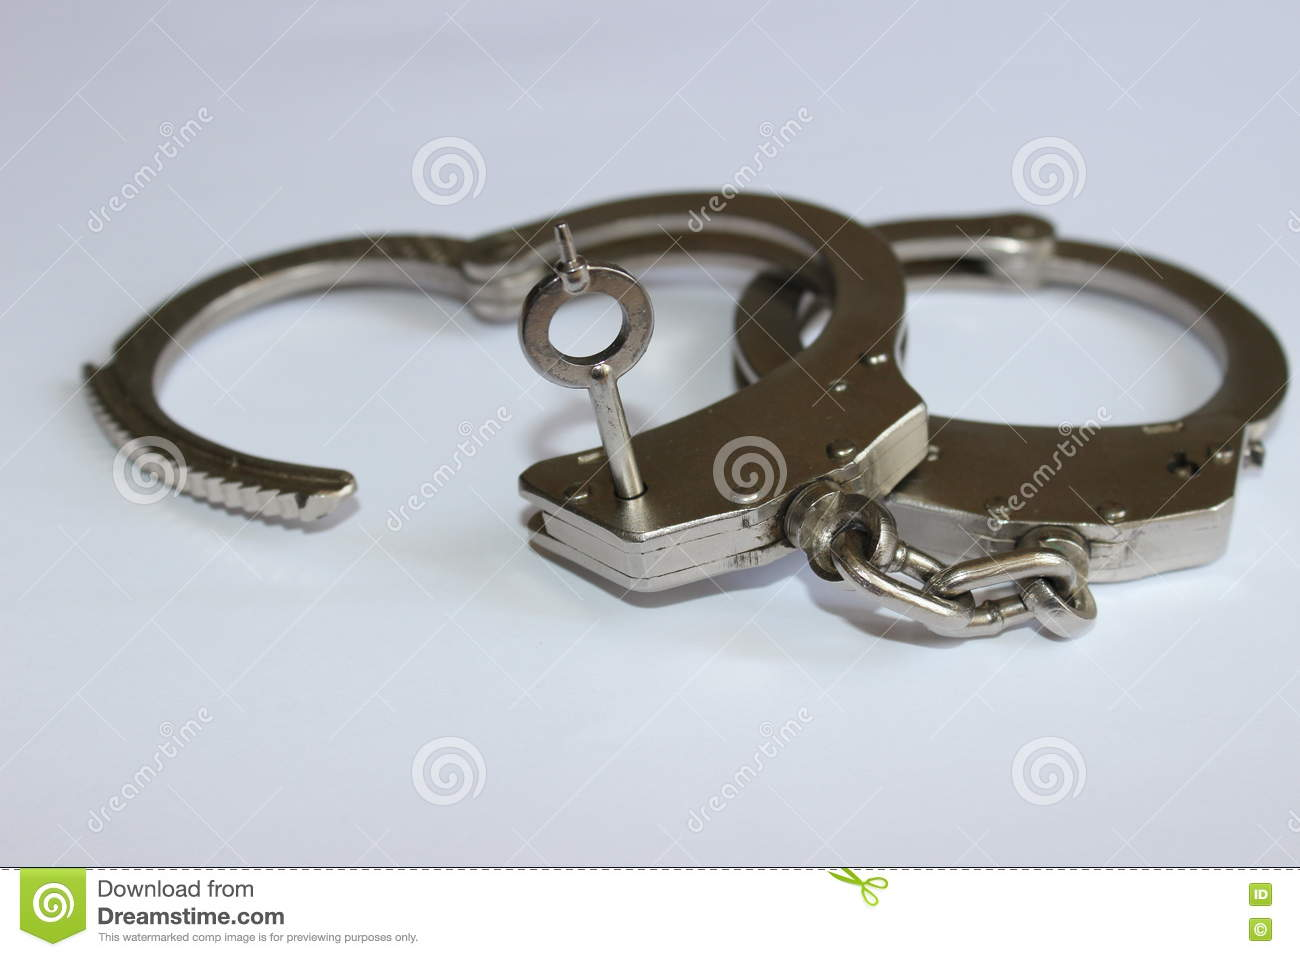 Handcuffs with key